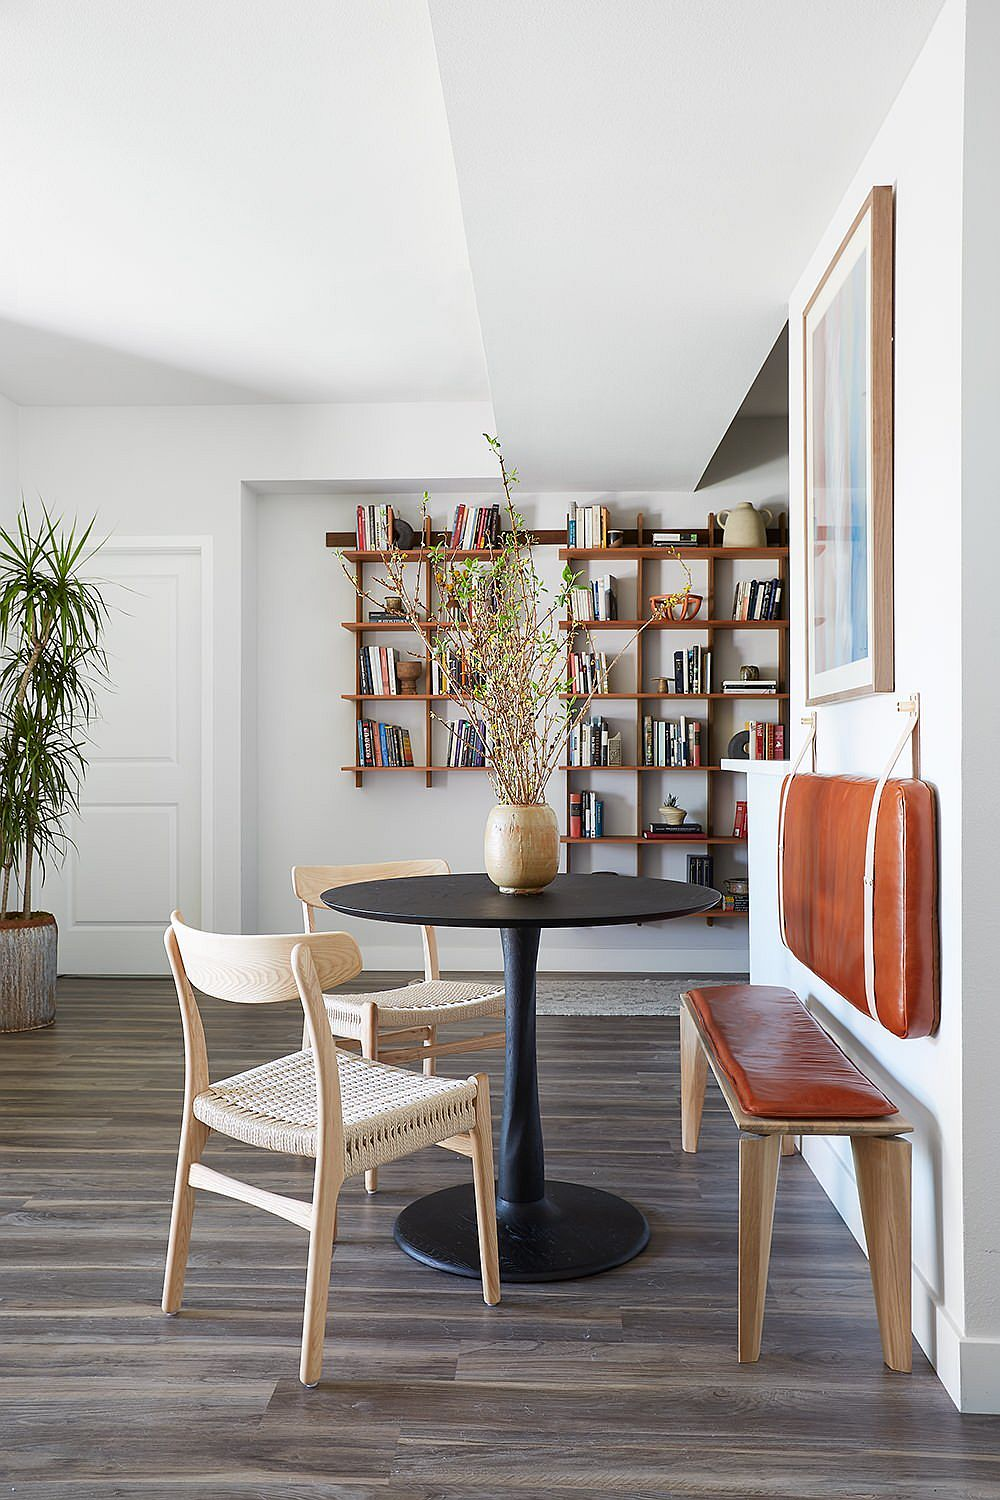 Tiny breakfast nook can be placed pretty much anywhere in the home